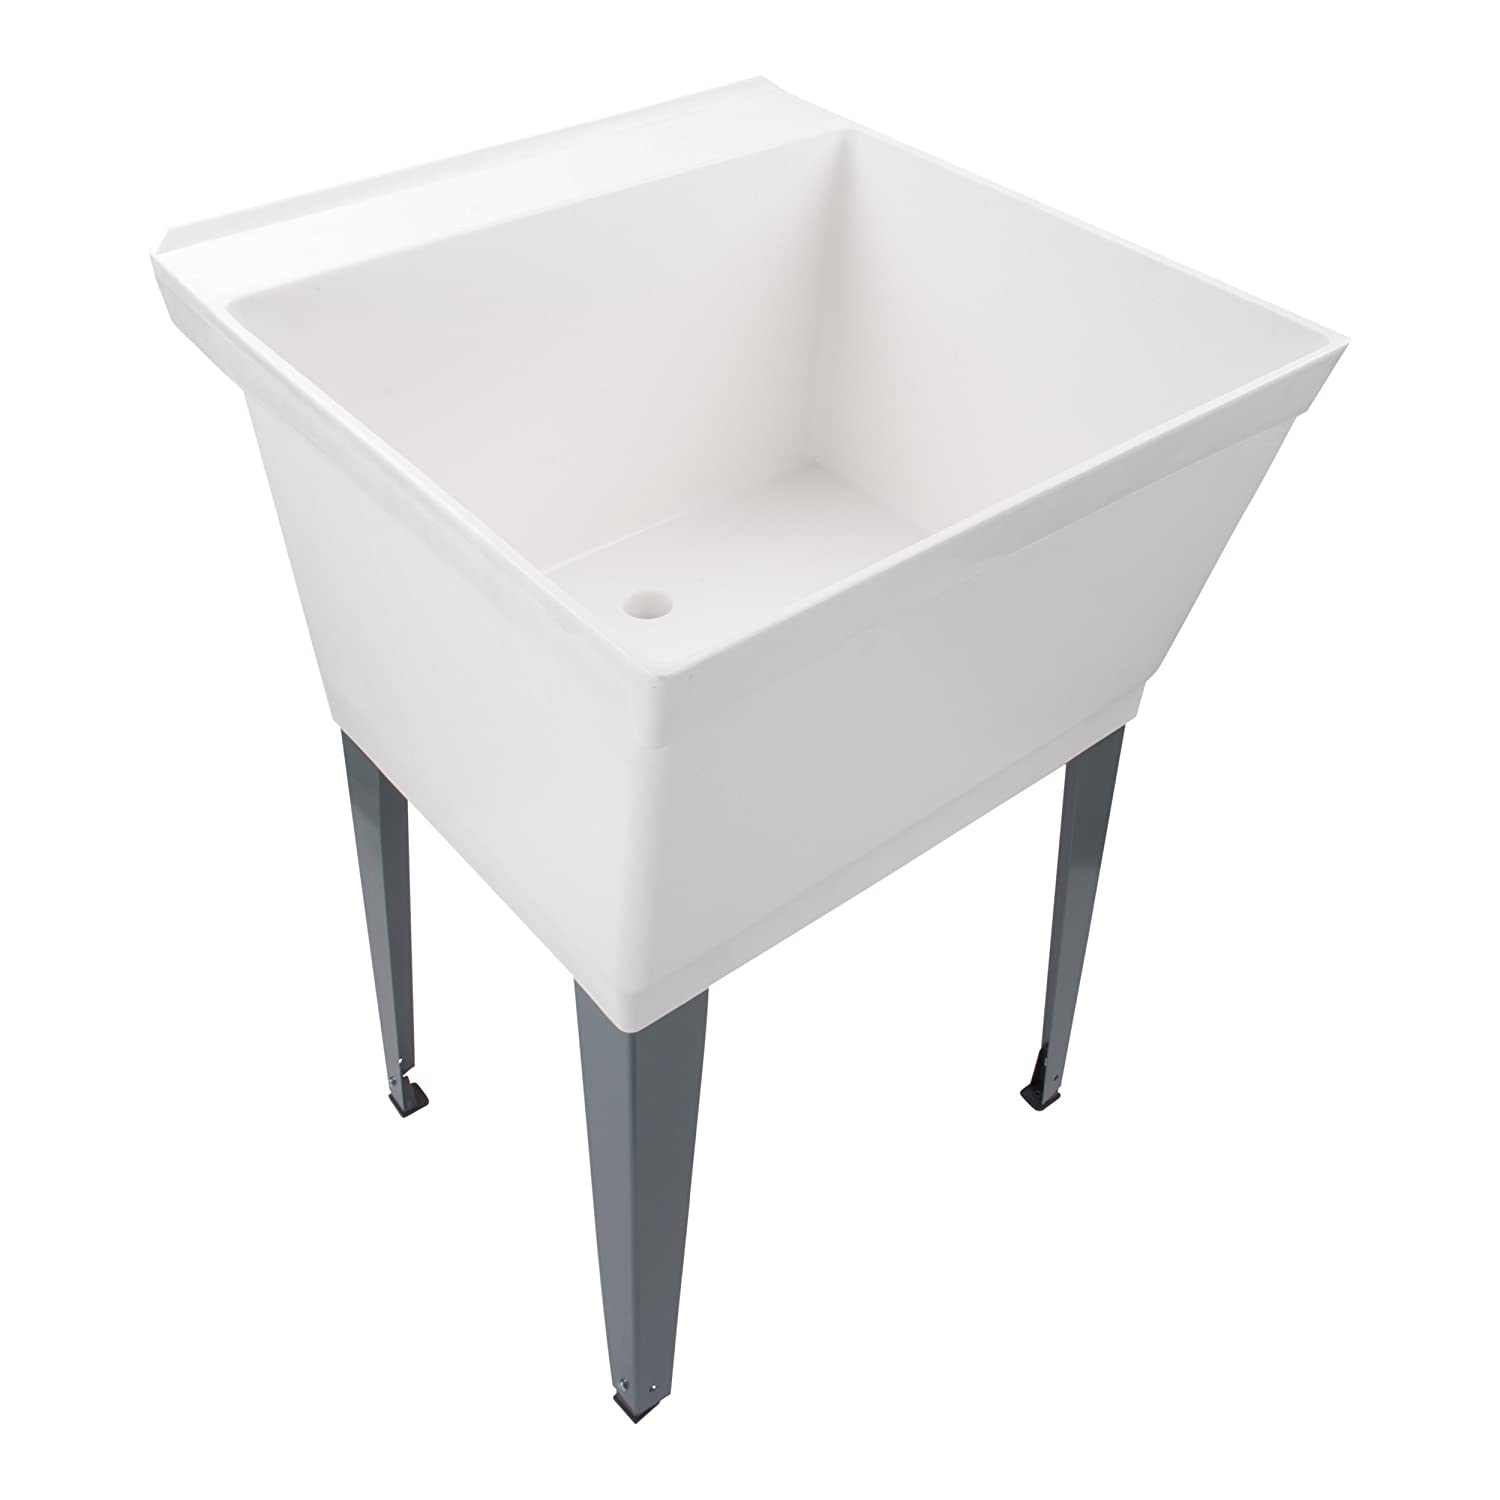 19-Gallon Laundry Utility Tub | Heavy Duty Thermoplastic Basin, Adjustable Metal Legs, Everything Necessary For A Complete Sink Installation (Includes Supply Lines And Piping), FAUCET NOT INCL